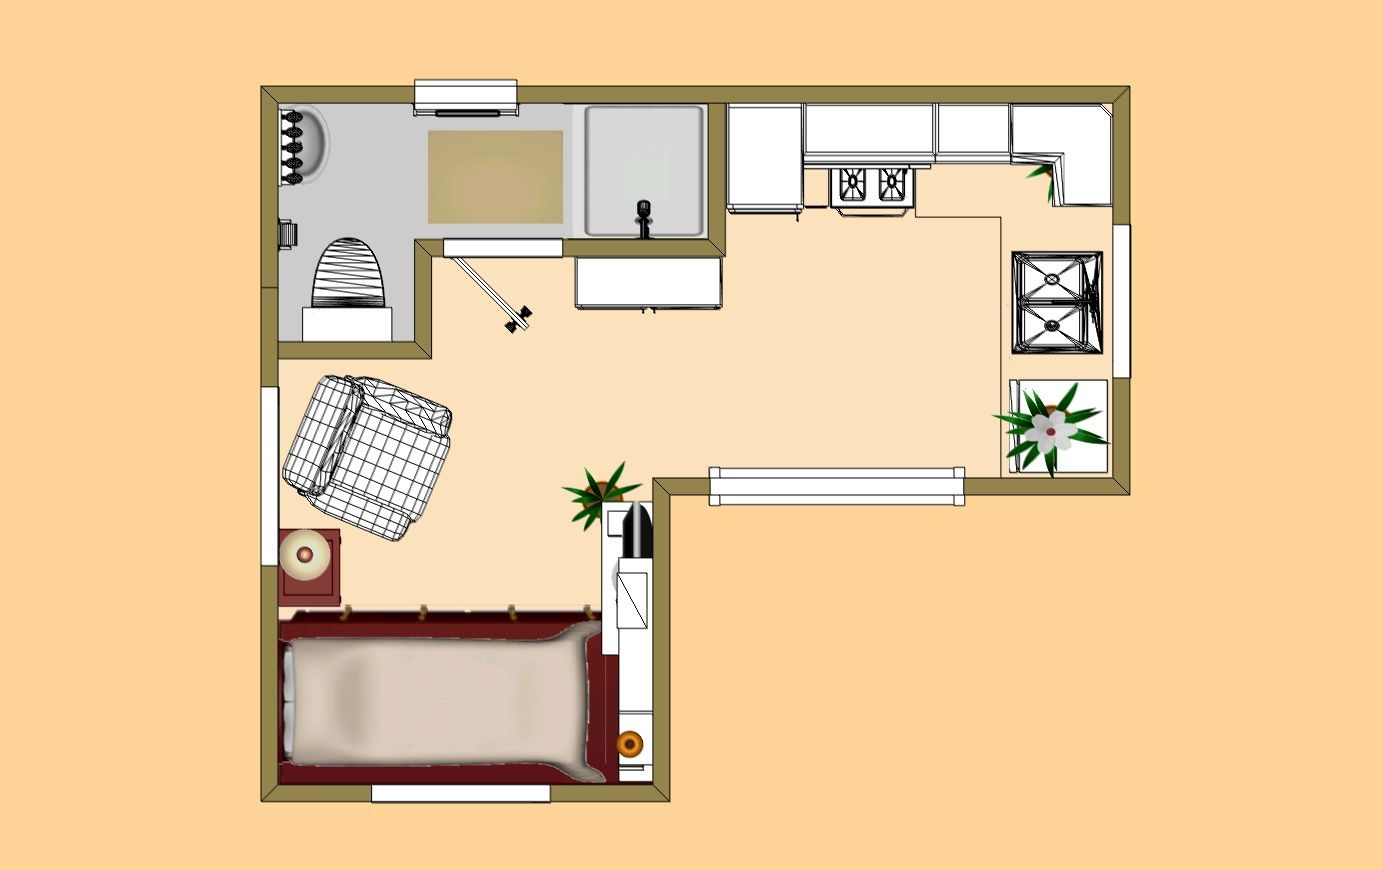 The Simple Floor Plan With All The Touches Of A Cozy Home Tiny House Plans Tiny House Floor Plans Small House Plans